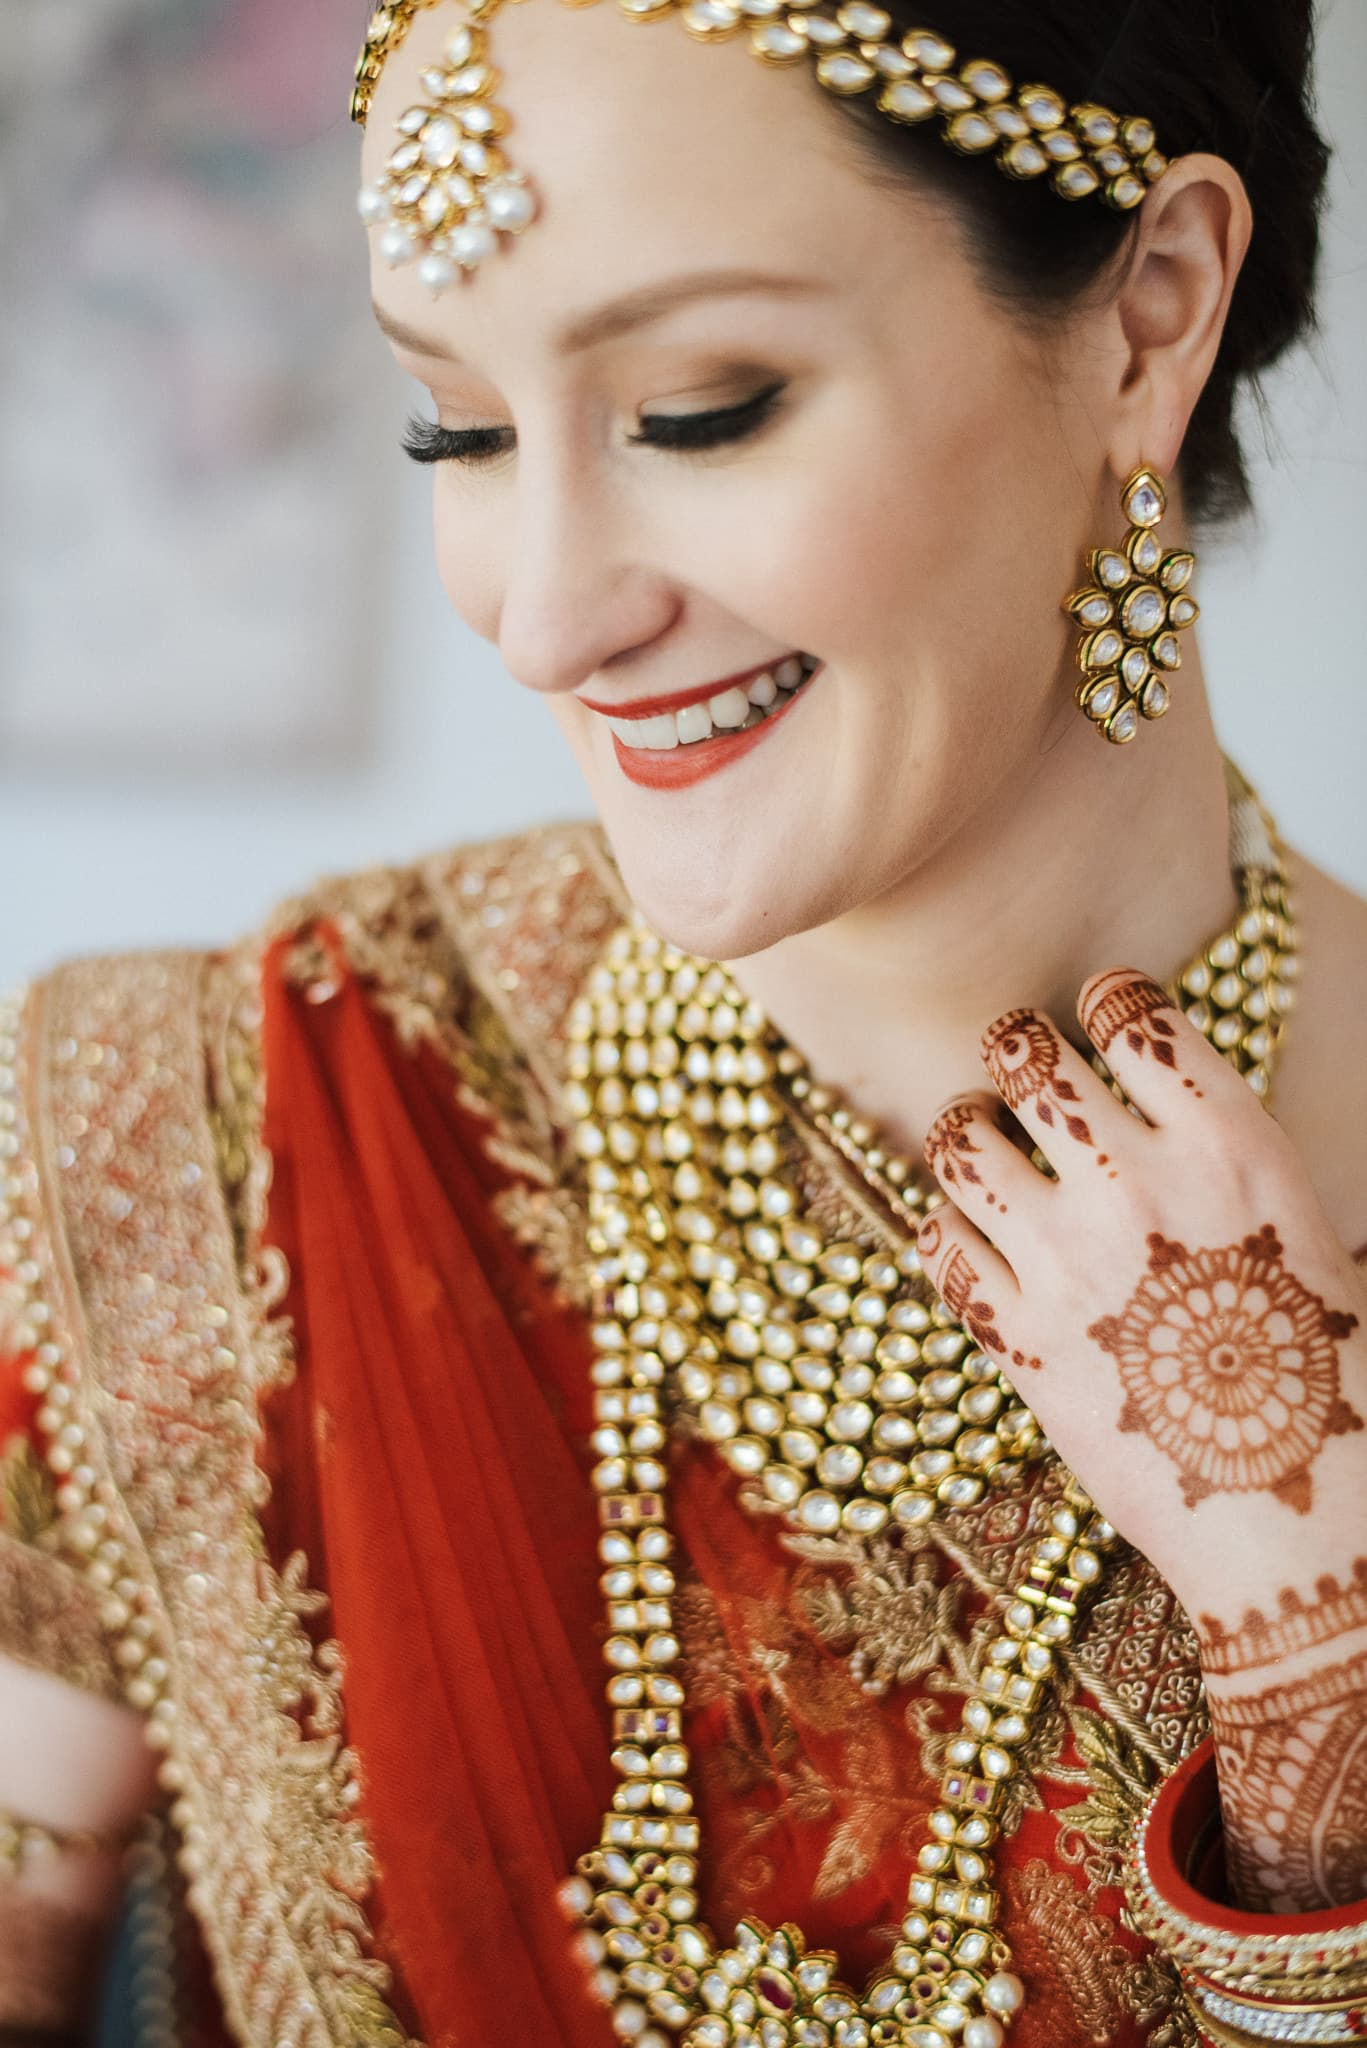 Australian bride, Claire wore a classic Indian bridal lehenga for her wedding to Rohit in Melbourne, Australia.